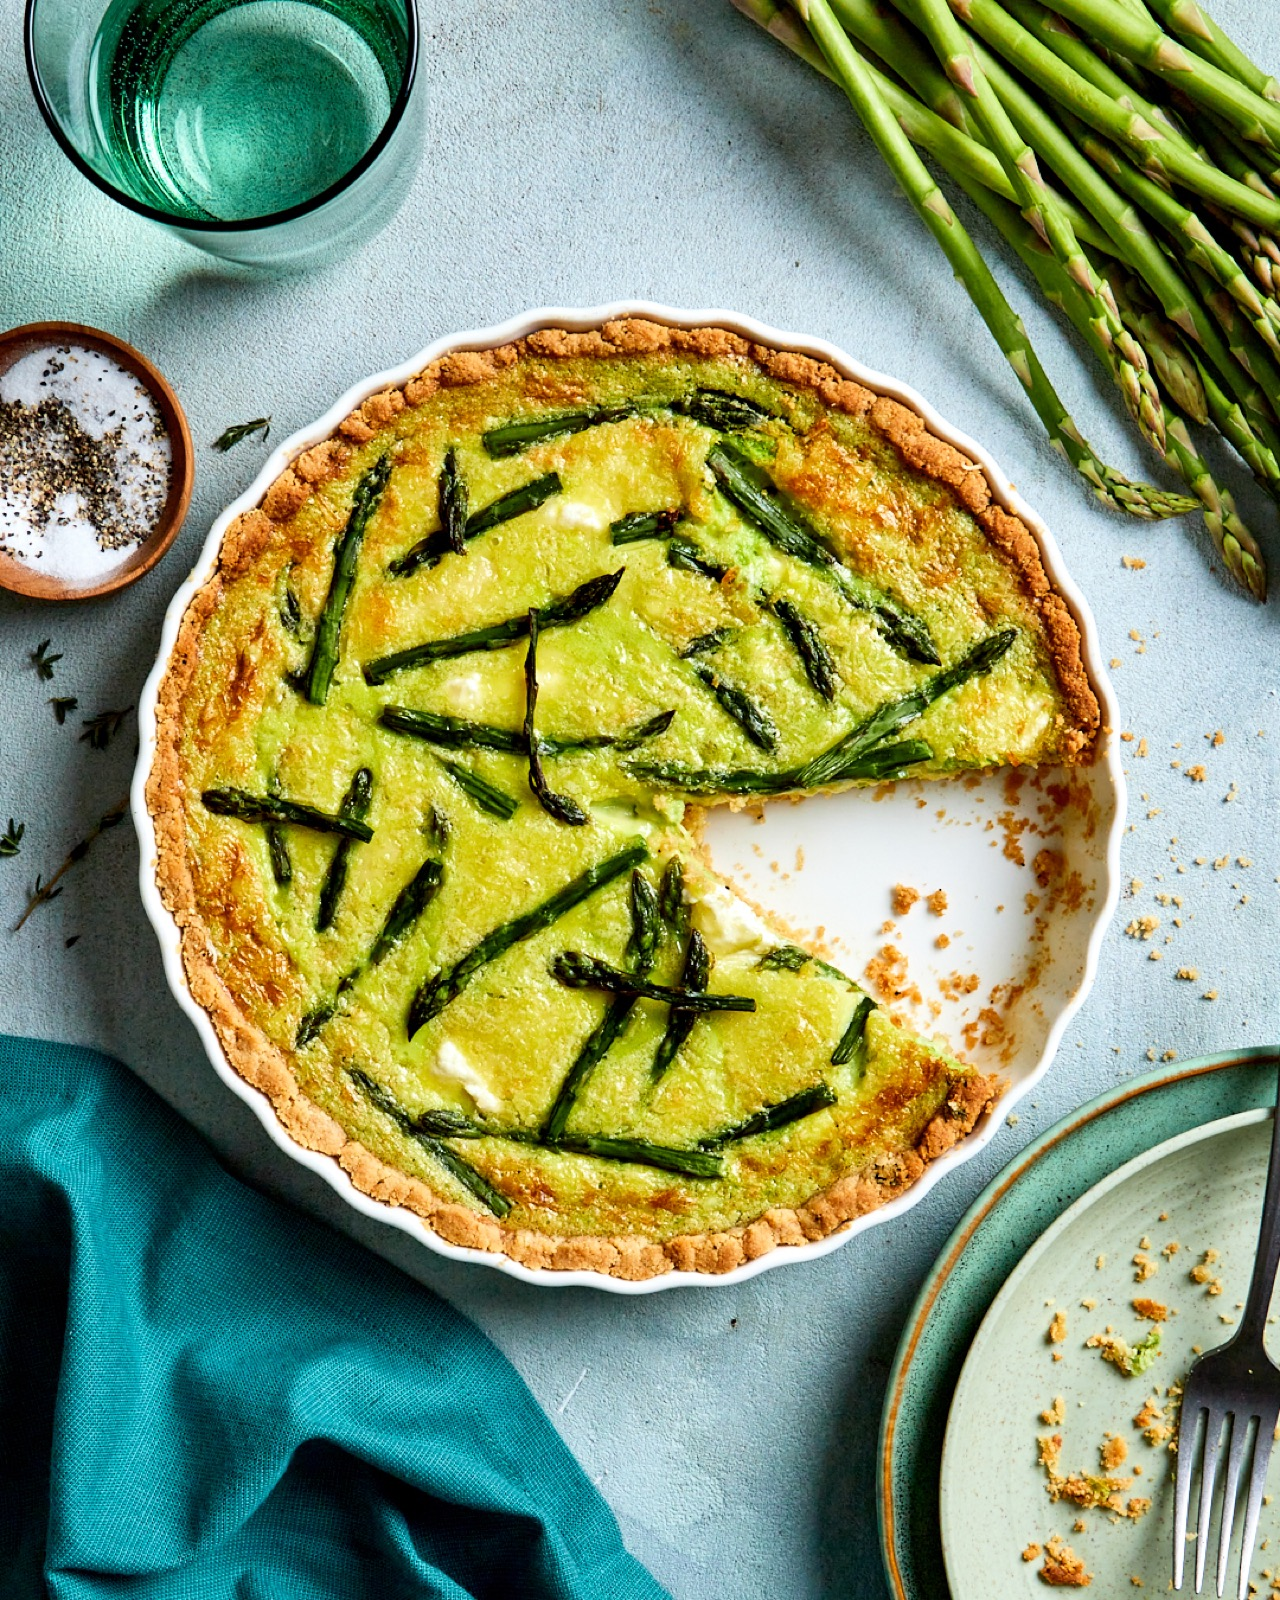 Asparagus Custard Tart With a Gluten Free Crust